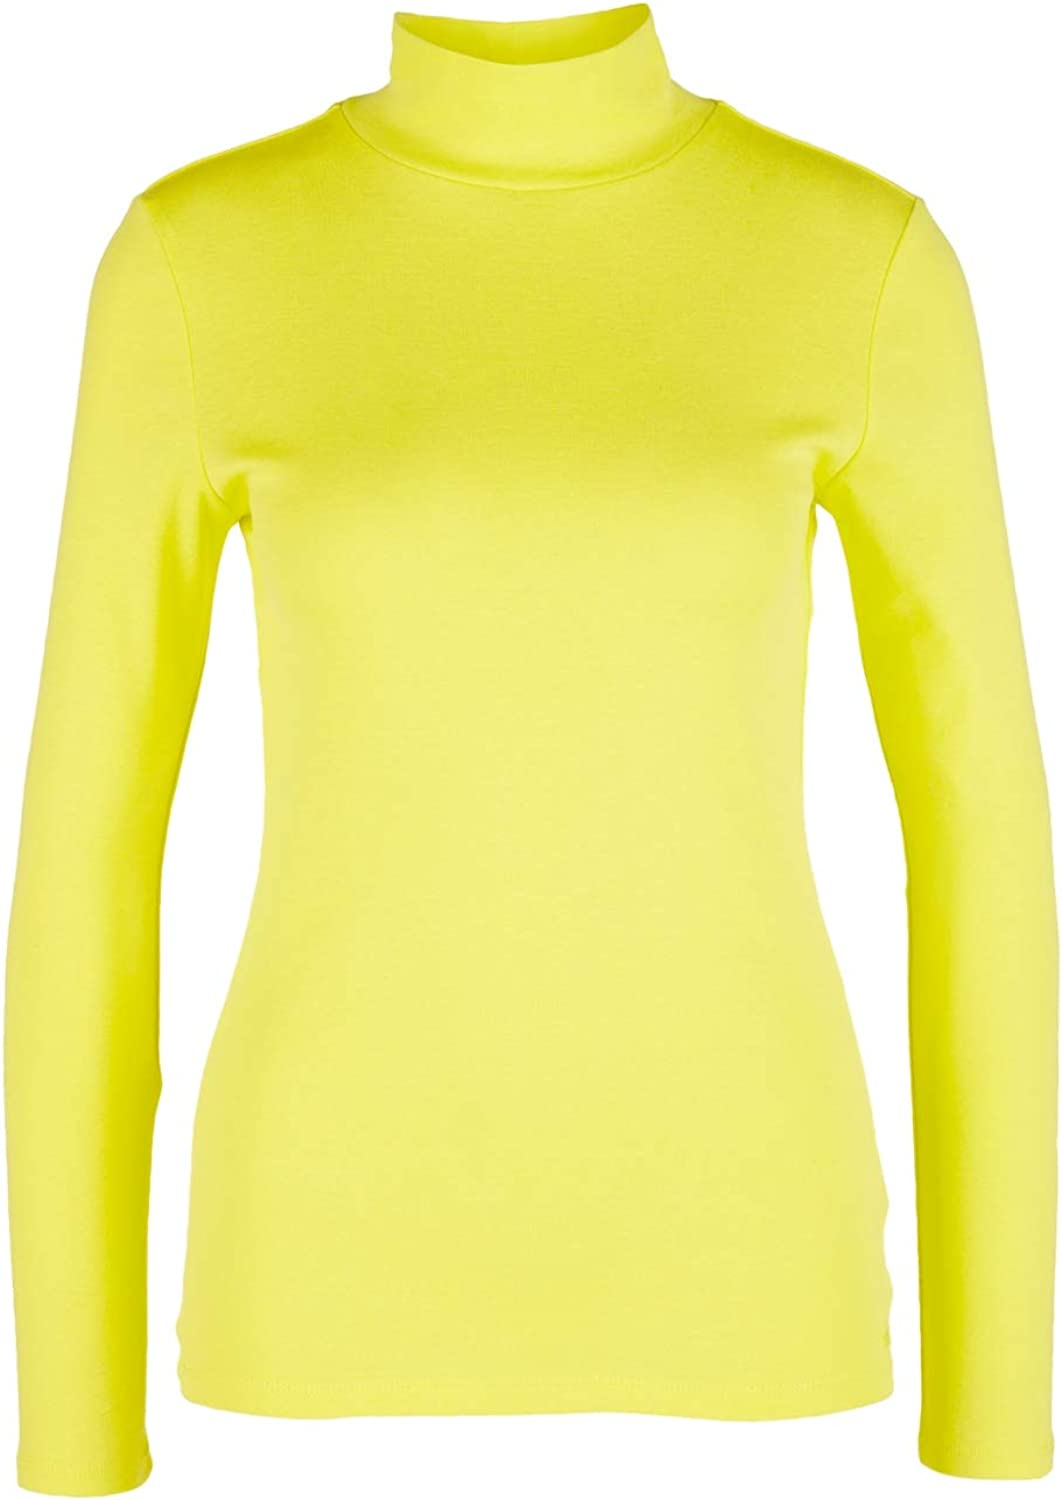 s.Oliver T-Shirt Manches Longues Femme